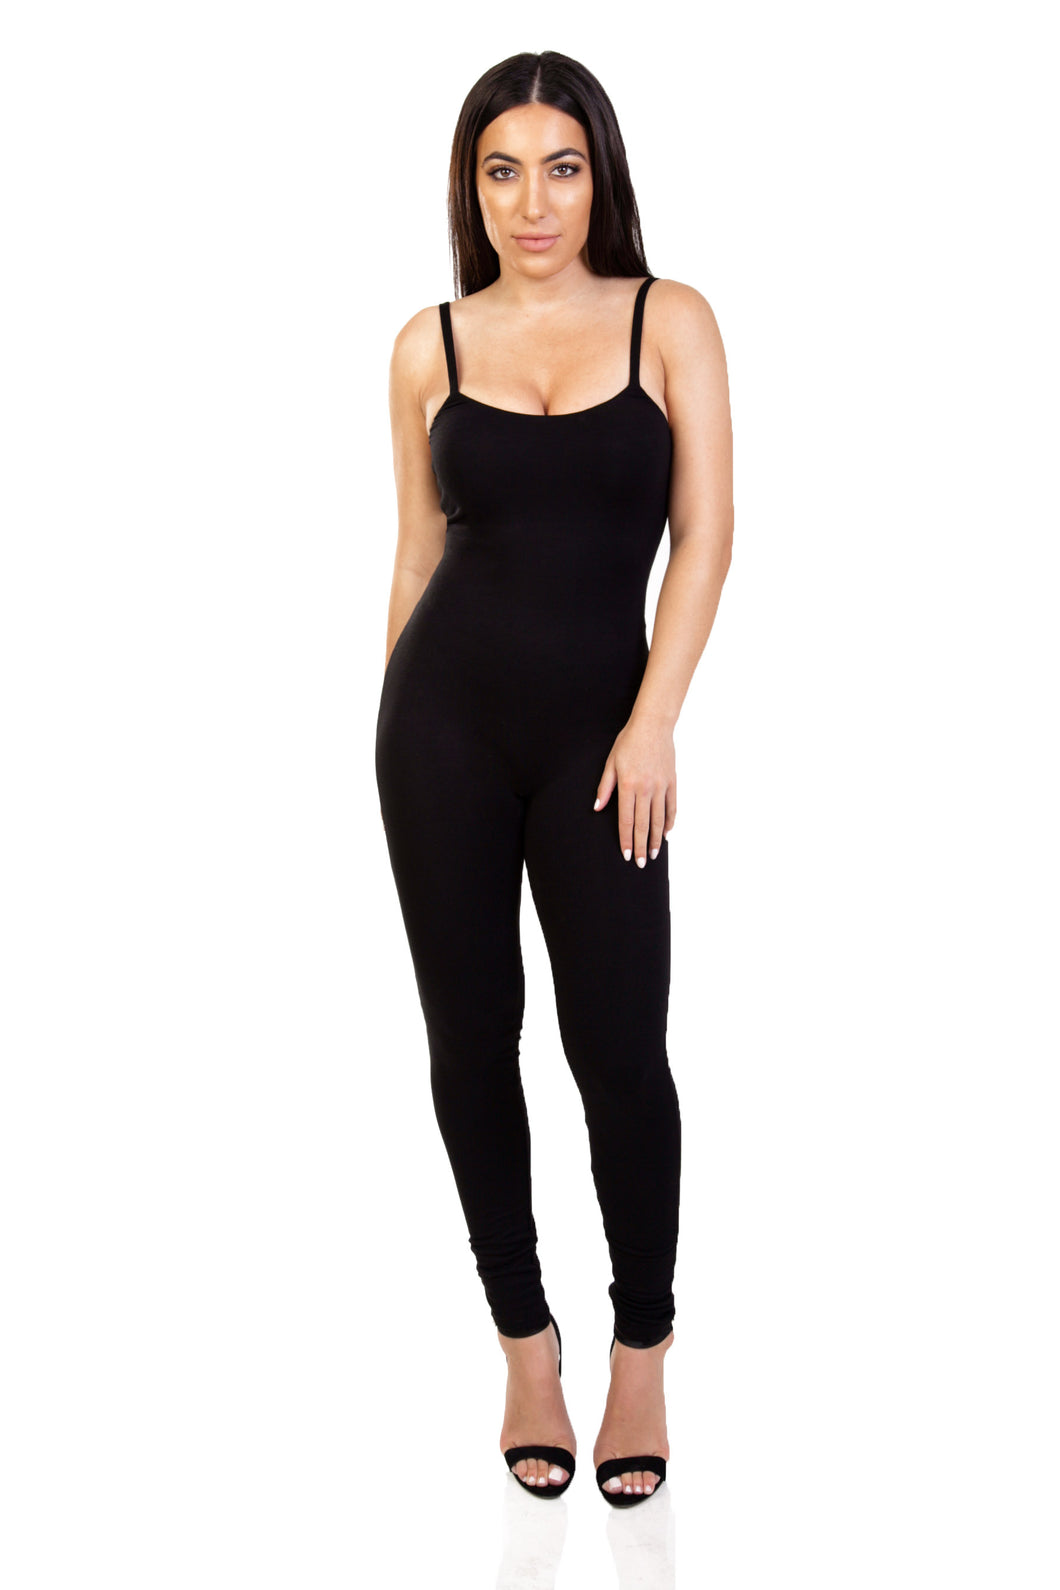 BODY HUGGING JUMPSUIT